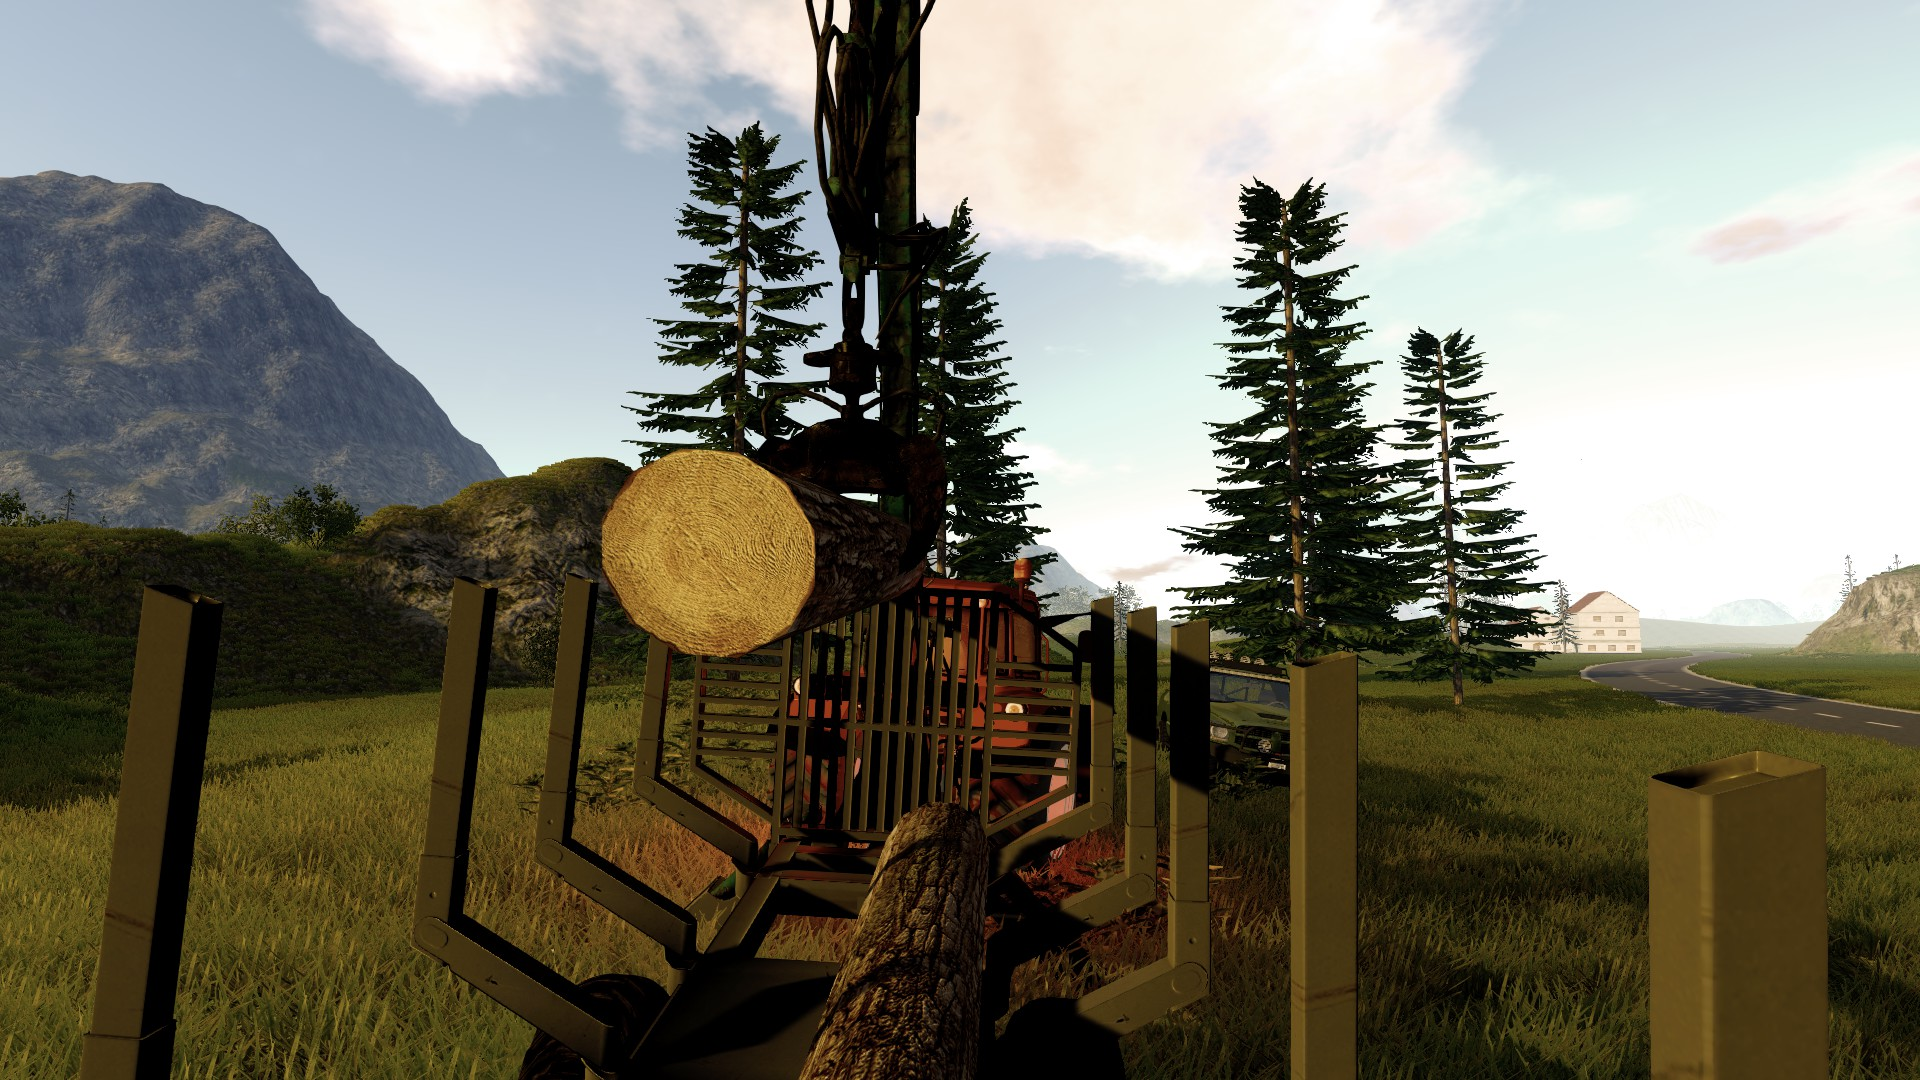 Forestry 2017 The Simulation Repack